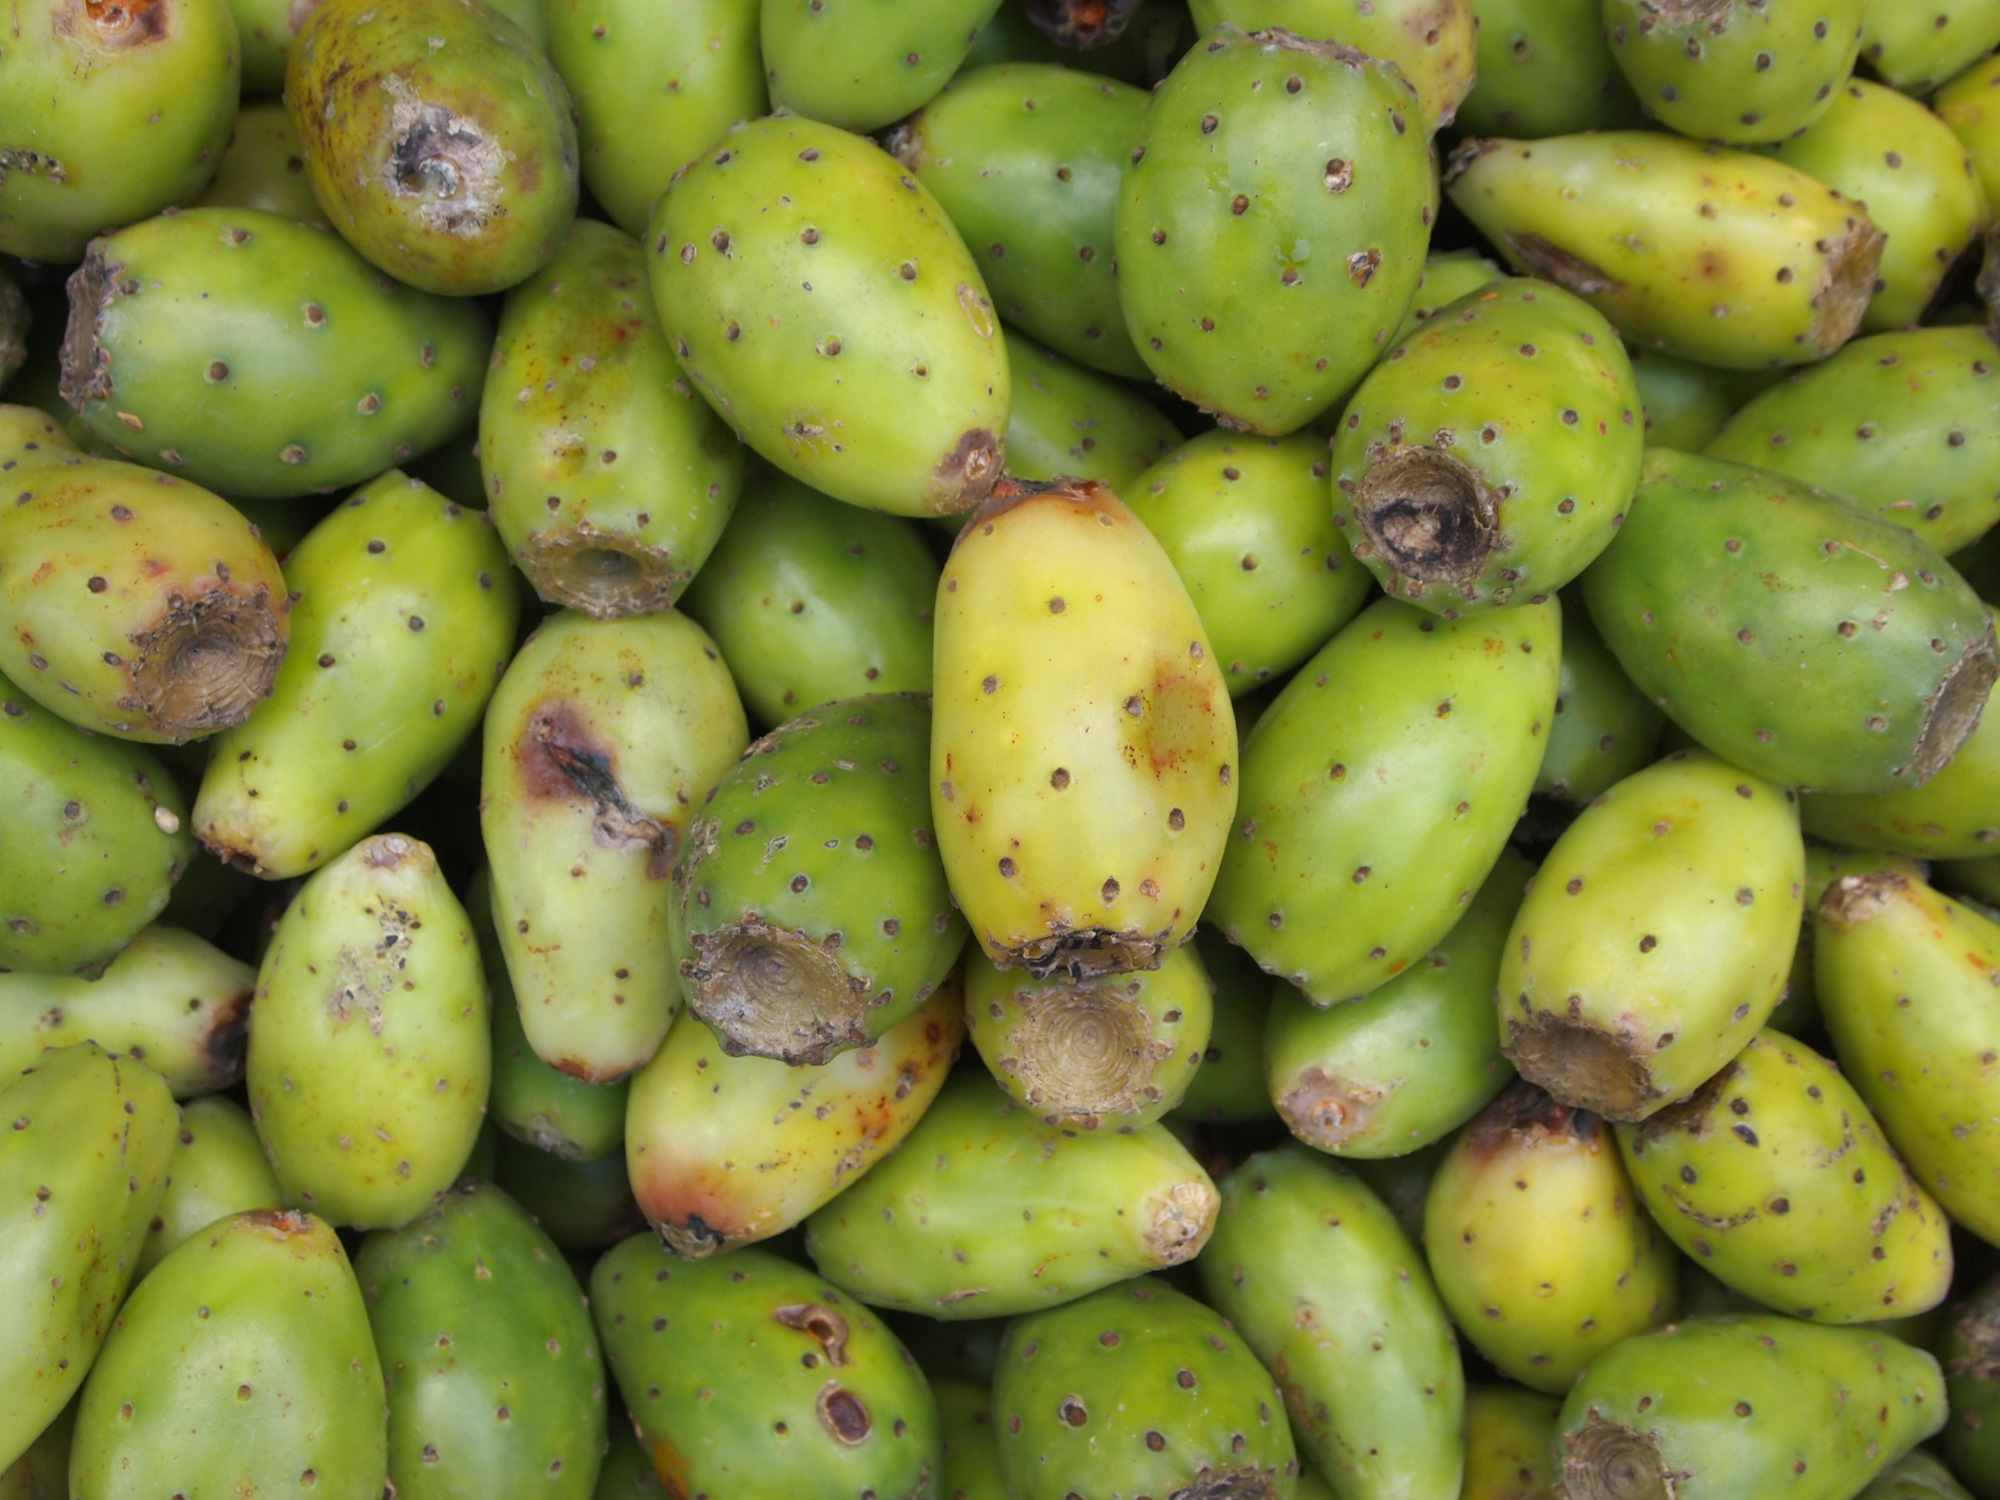 How to Harvest & Eat Prickly Pear Cactus Fruit